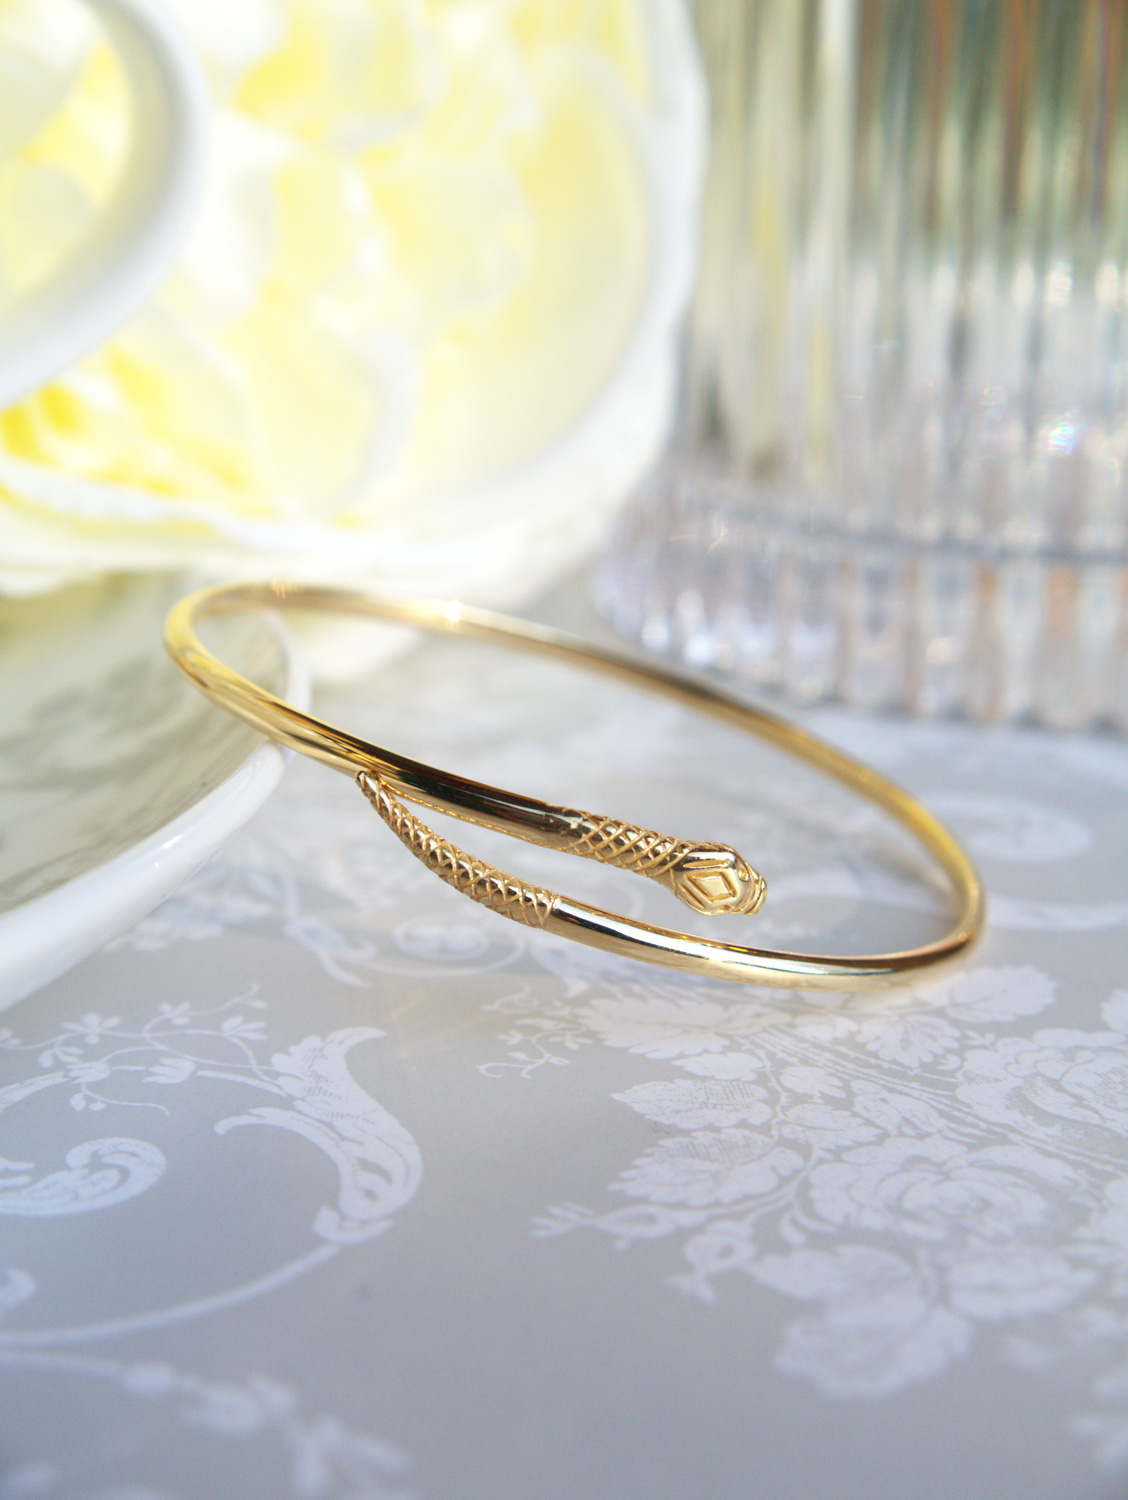 Ladies Womens 9ct Yellow Gold Snake Serpent Bangle